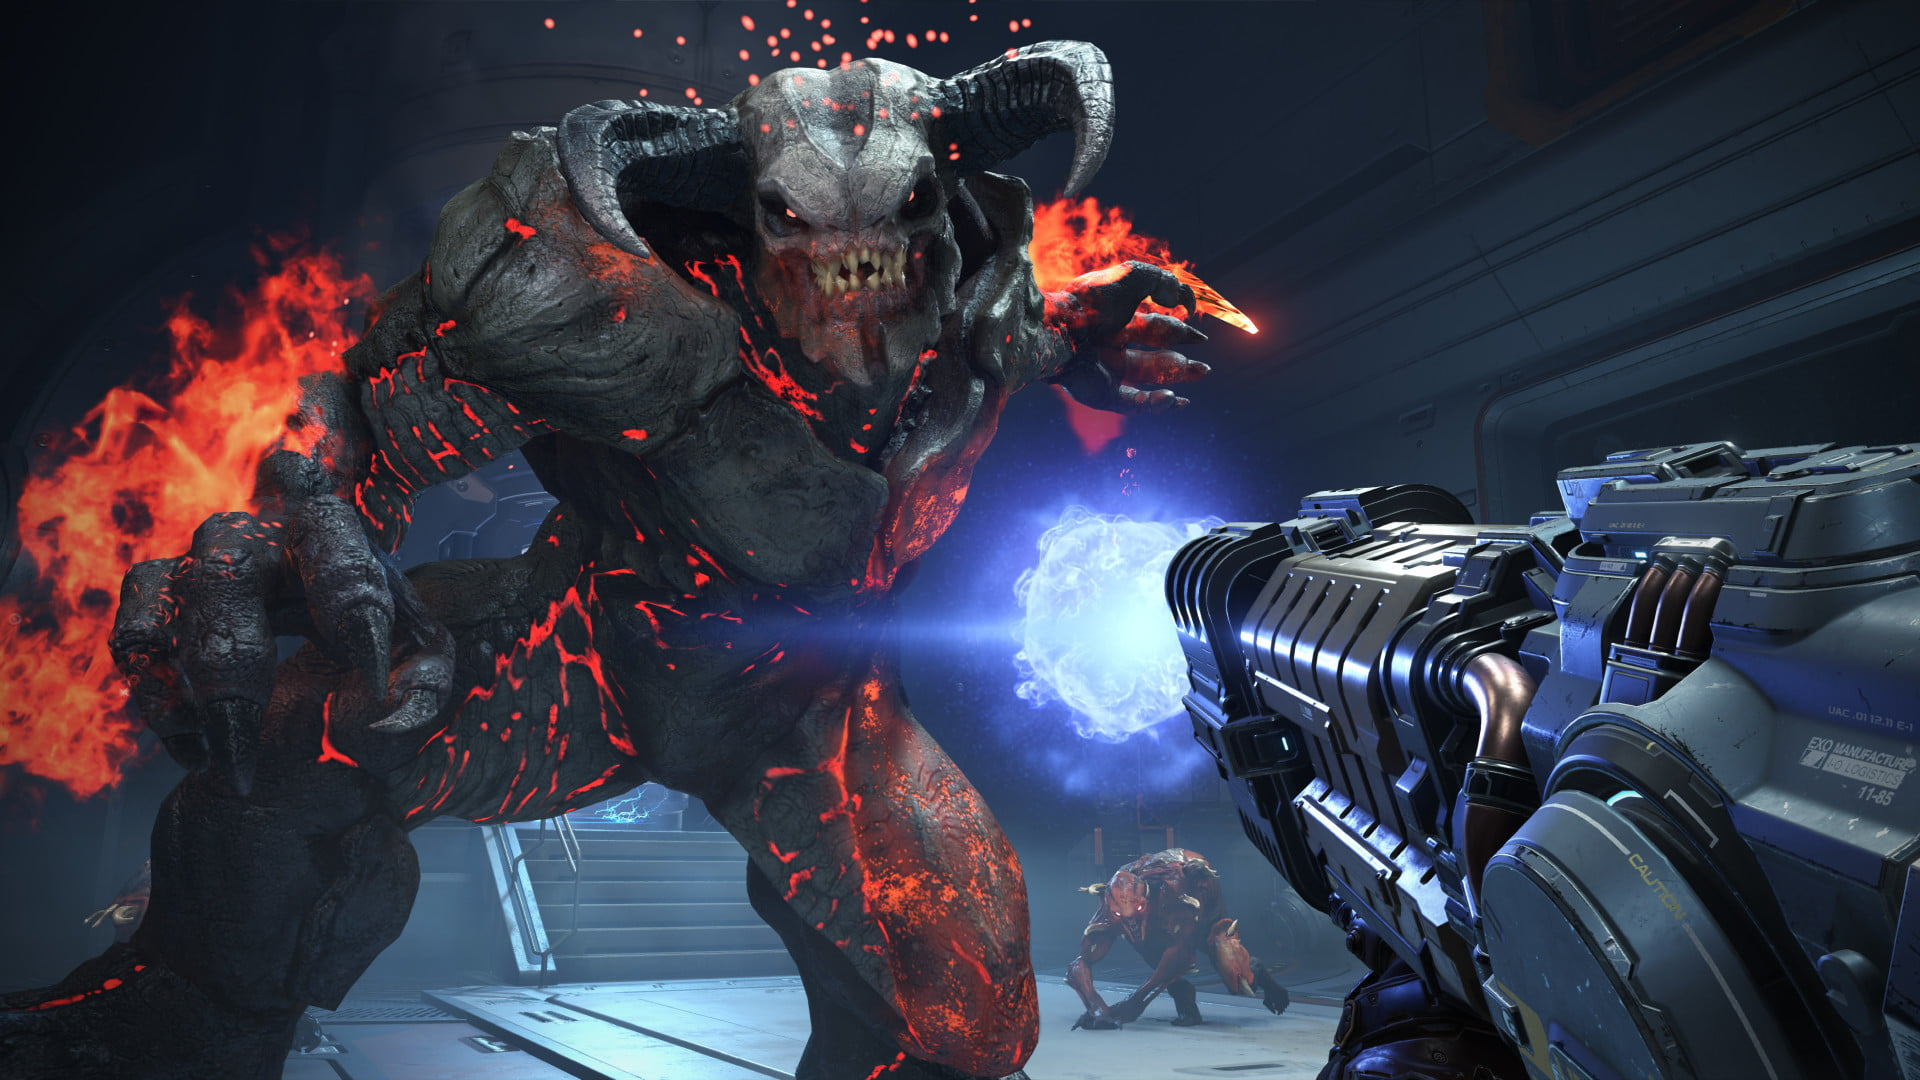 Doom Eternal stays old-school, won't include microtransactions